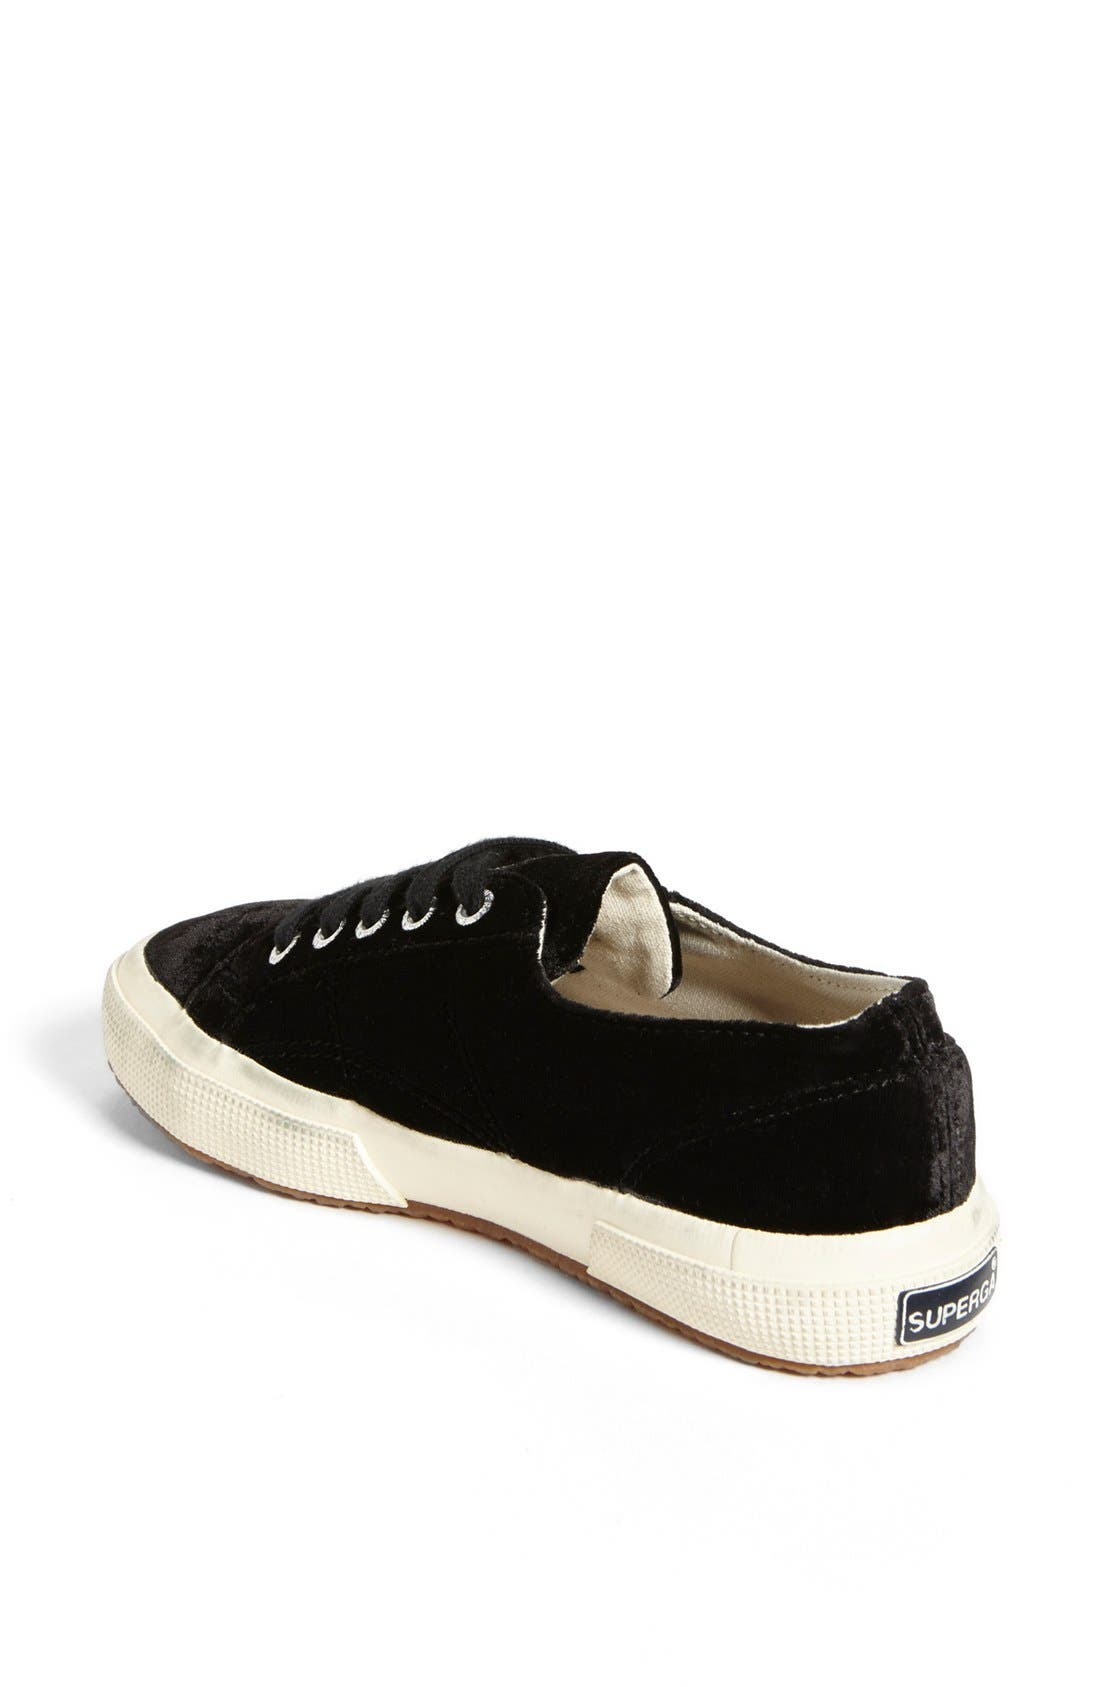 Alternate Image 2  - Superga Velvet Sneaker (Women) (Limited Edition)